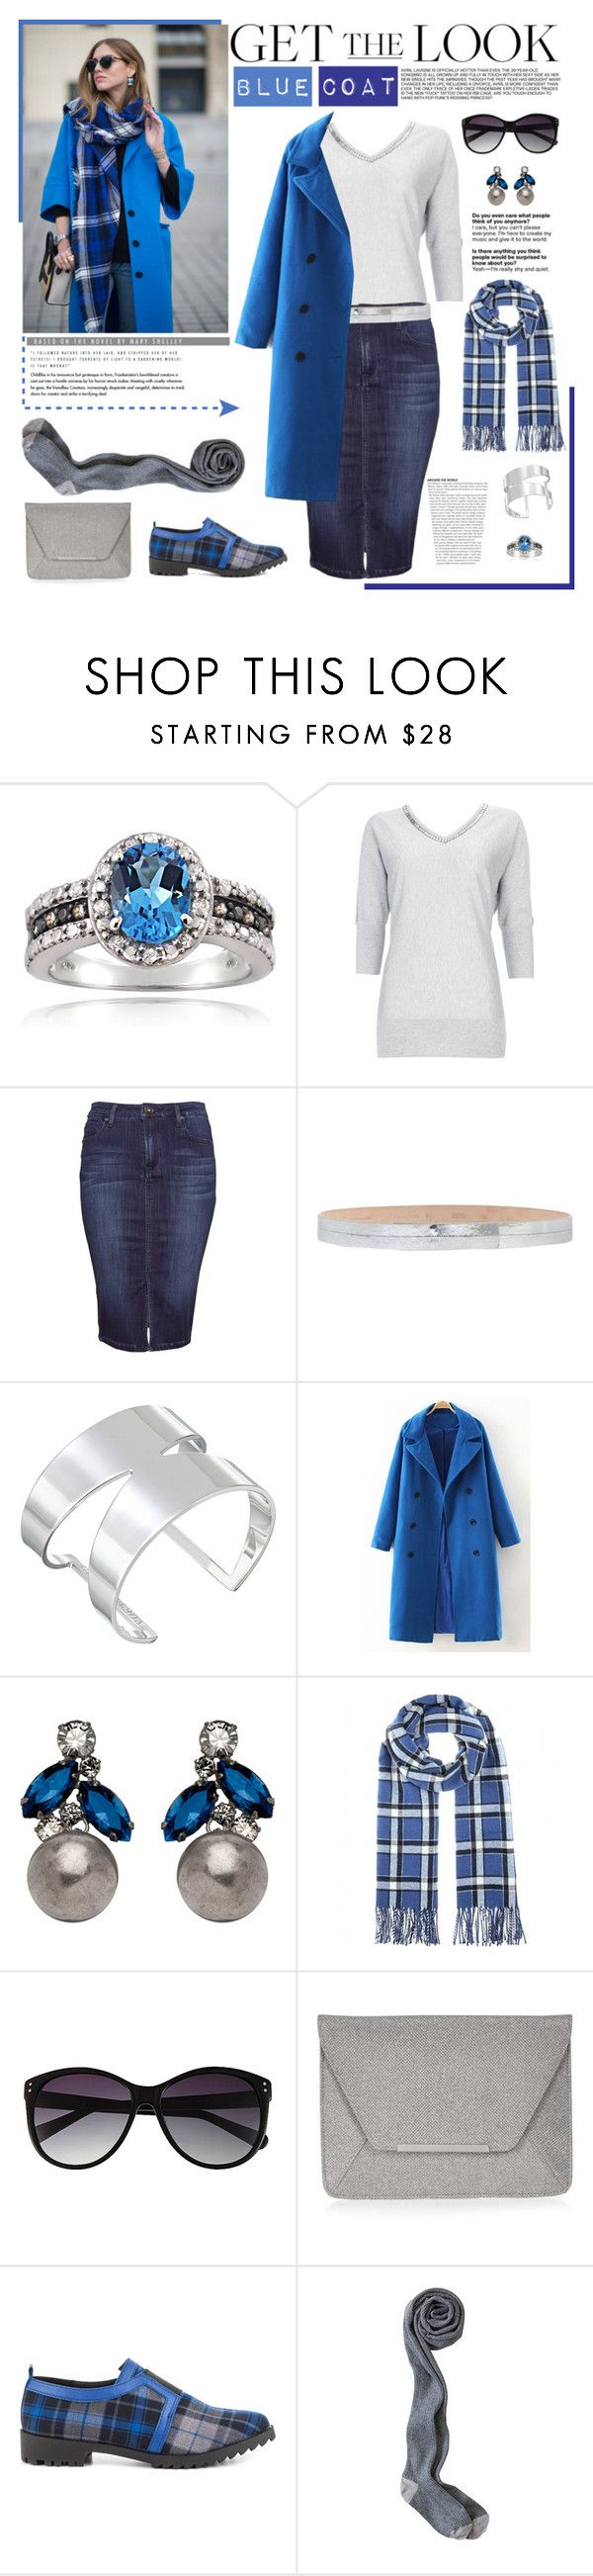 """Get the Look: Cool Coats #1"" by taggica ❤ liked on Polyvore featuring moda, Glitzy Rocks, Wallis, Mauro Grifoni, Vince Camuto, Janis Savitt, Marc by Marc Jacobs, Accessorize e GX"